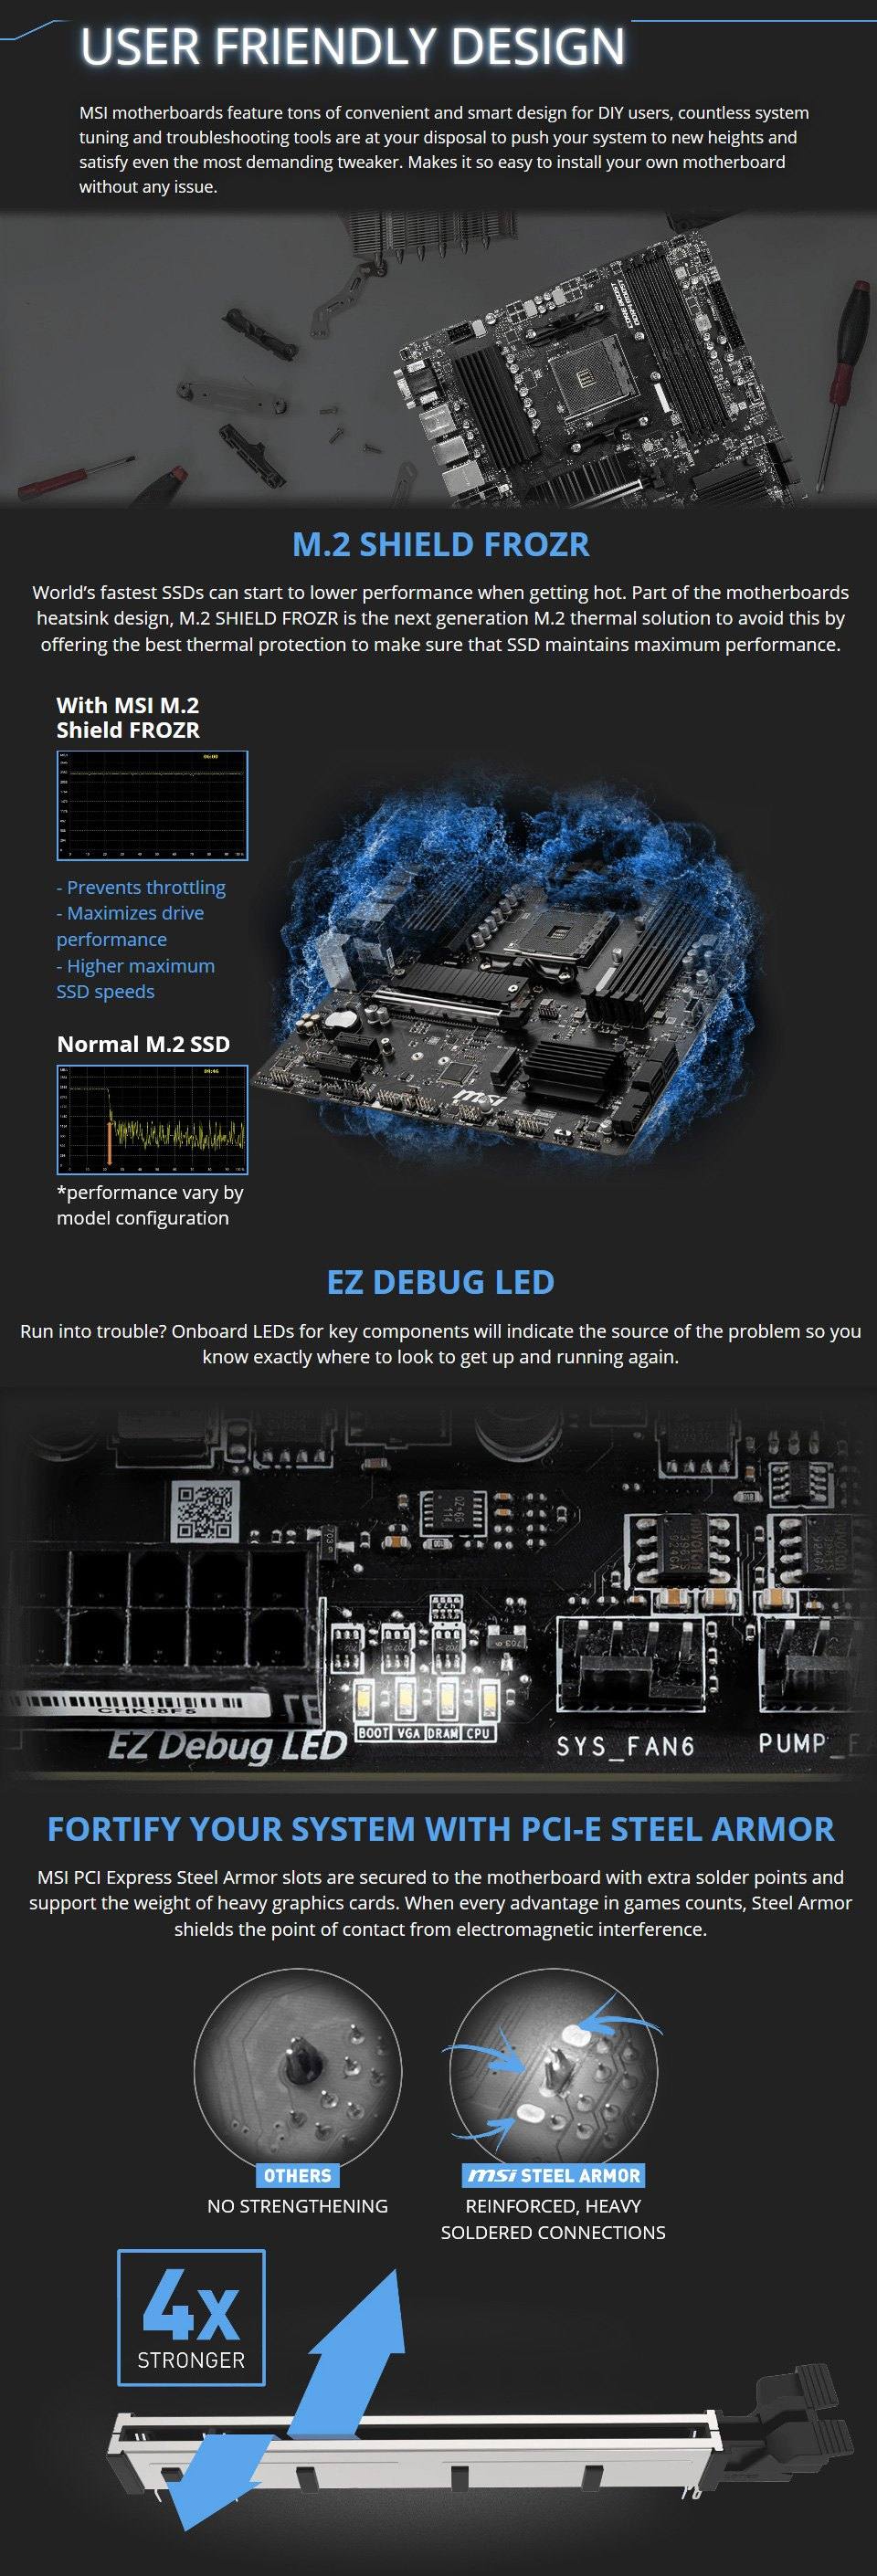 MSI B550M Pro-VDH Wi-Fi Motherboard features